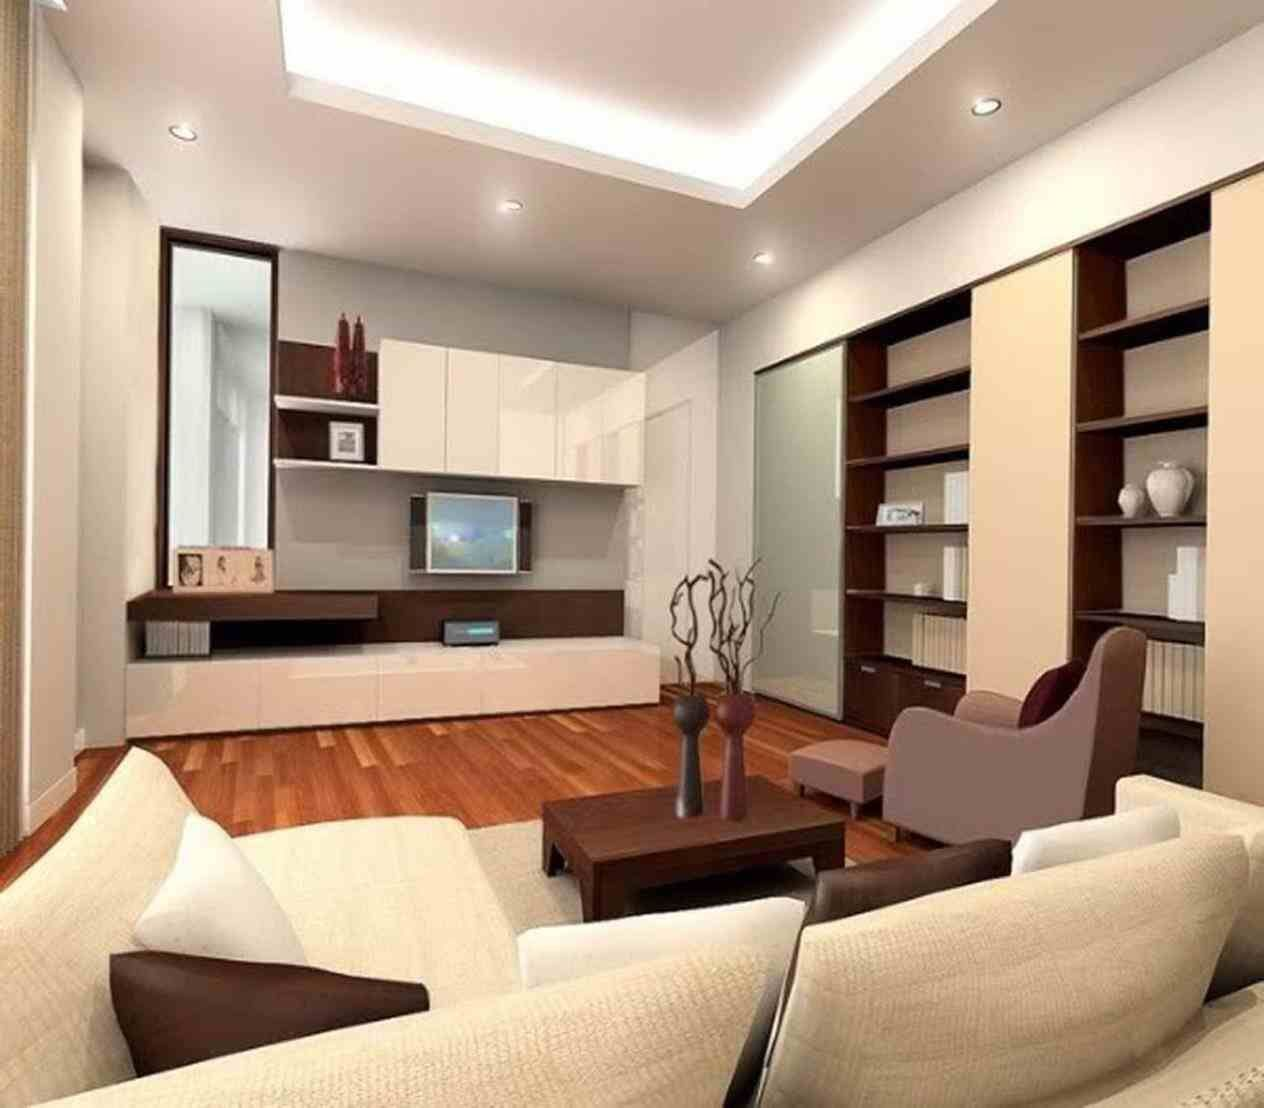 3 bhk wohndesign new post modern small living room ideas apartment visit bobayule